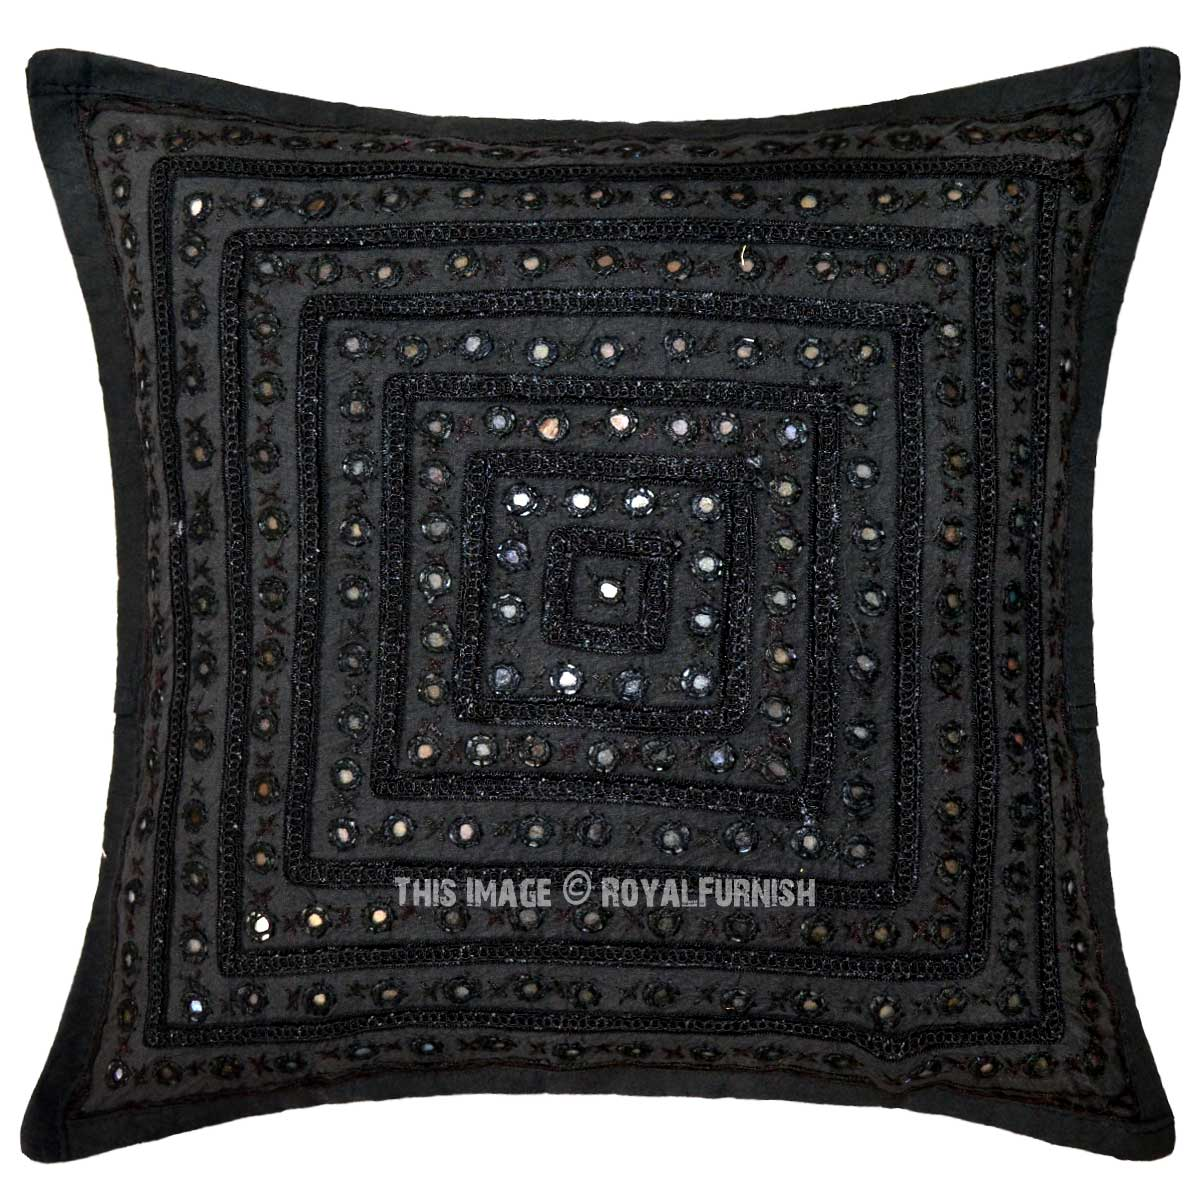 16x16 Decorative Pillow Covers : Black Decorative Unique Mirrored Embroidered Throw Pillow Cover 16X16 Inch - RoyalFurnish.com